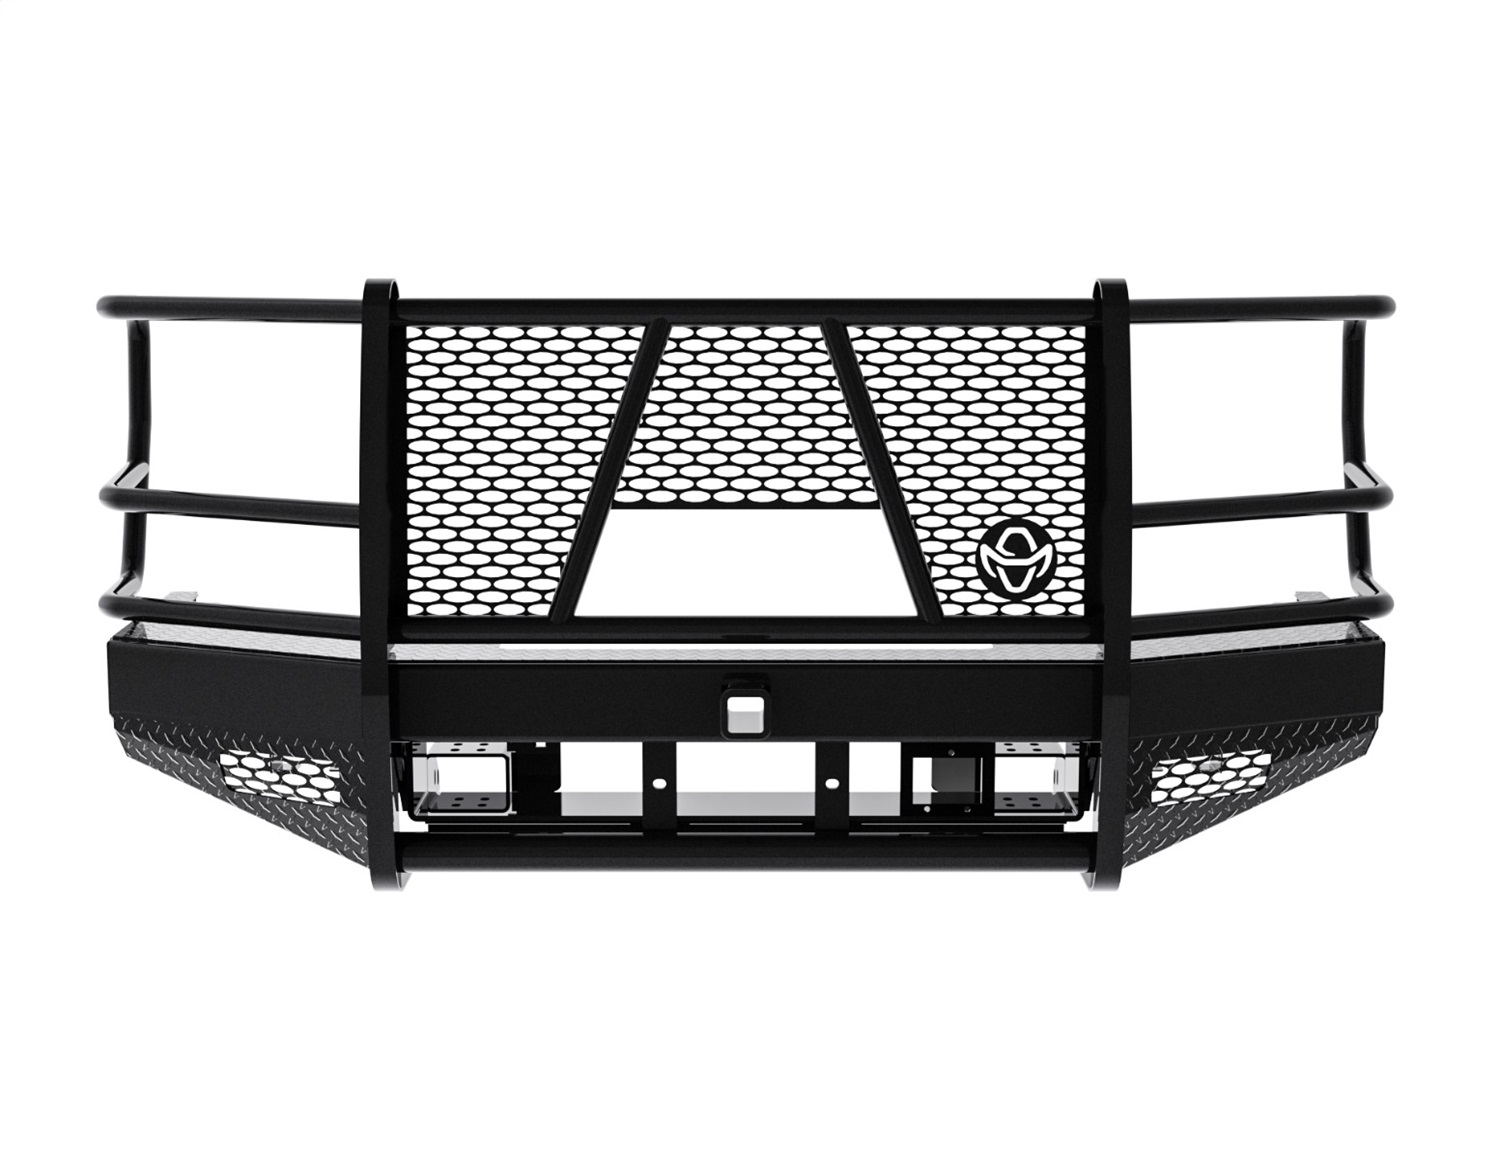 Sport Series Winch Ready Front Bumper, For Use w/Up To 15K Winch, Retains Factory Tow Hooks And Fog Lights, w/Camera Access/Camera Ready